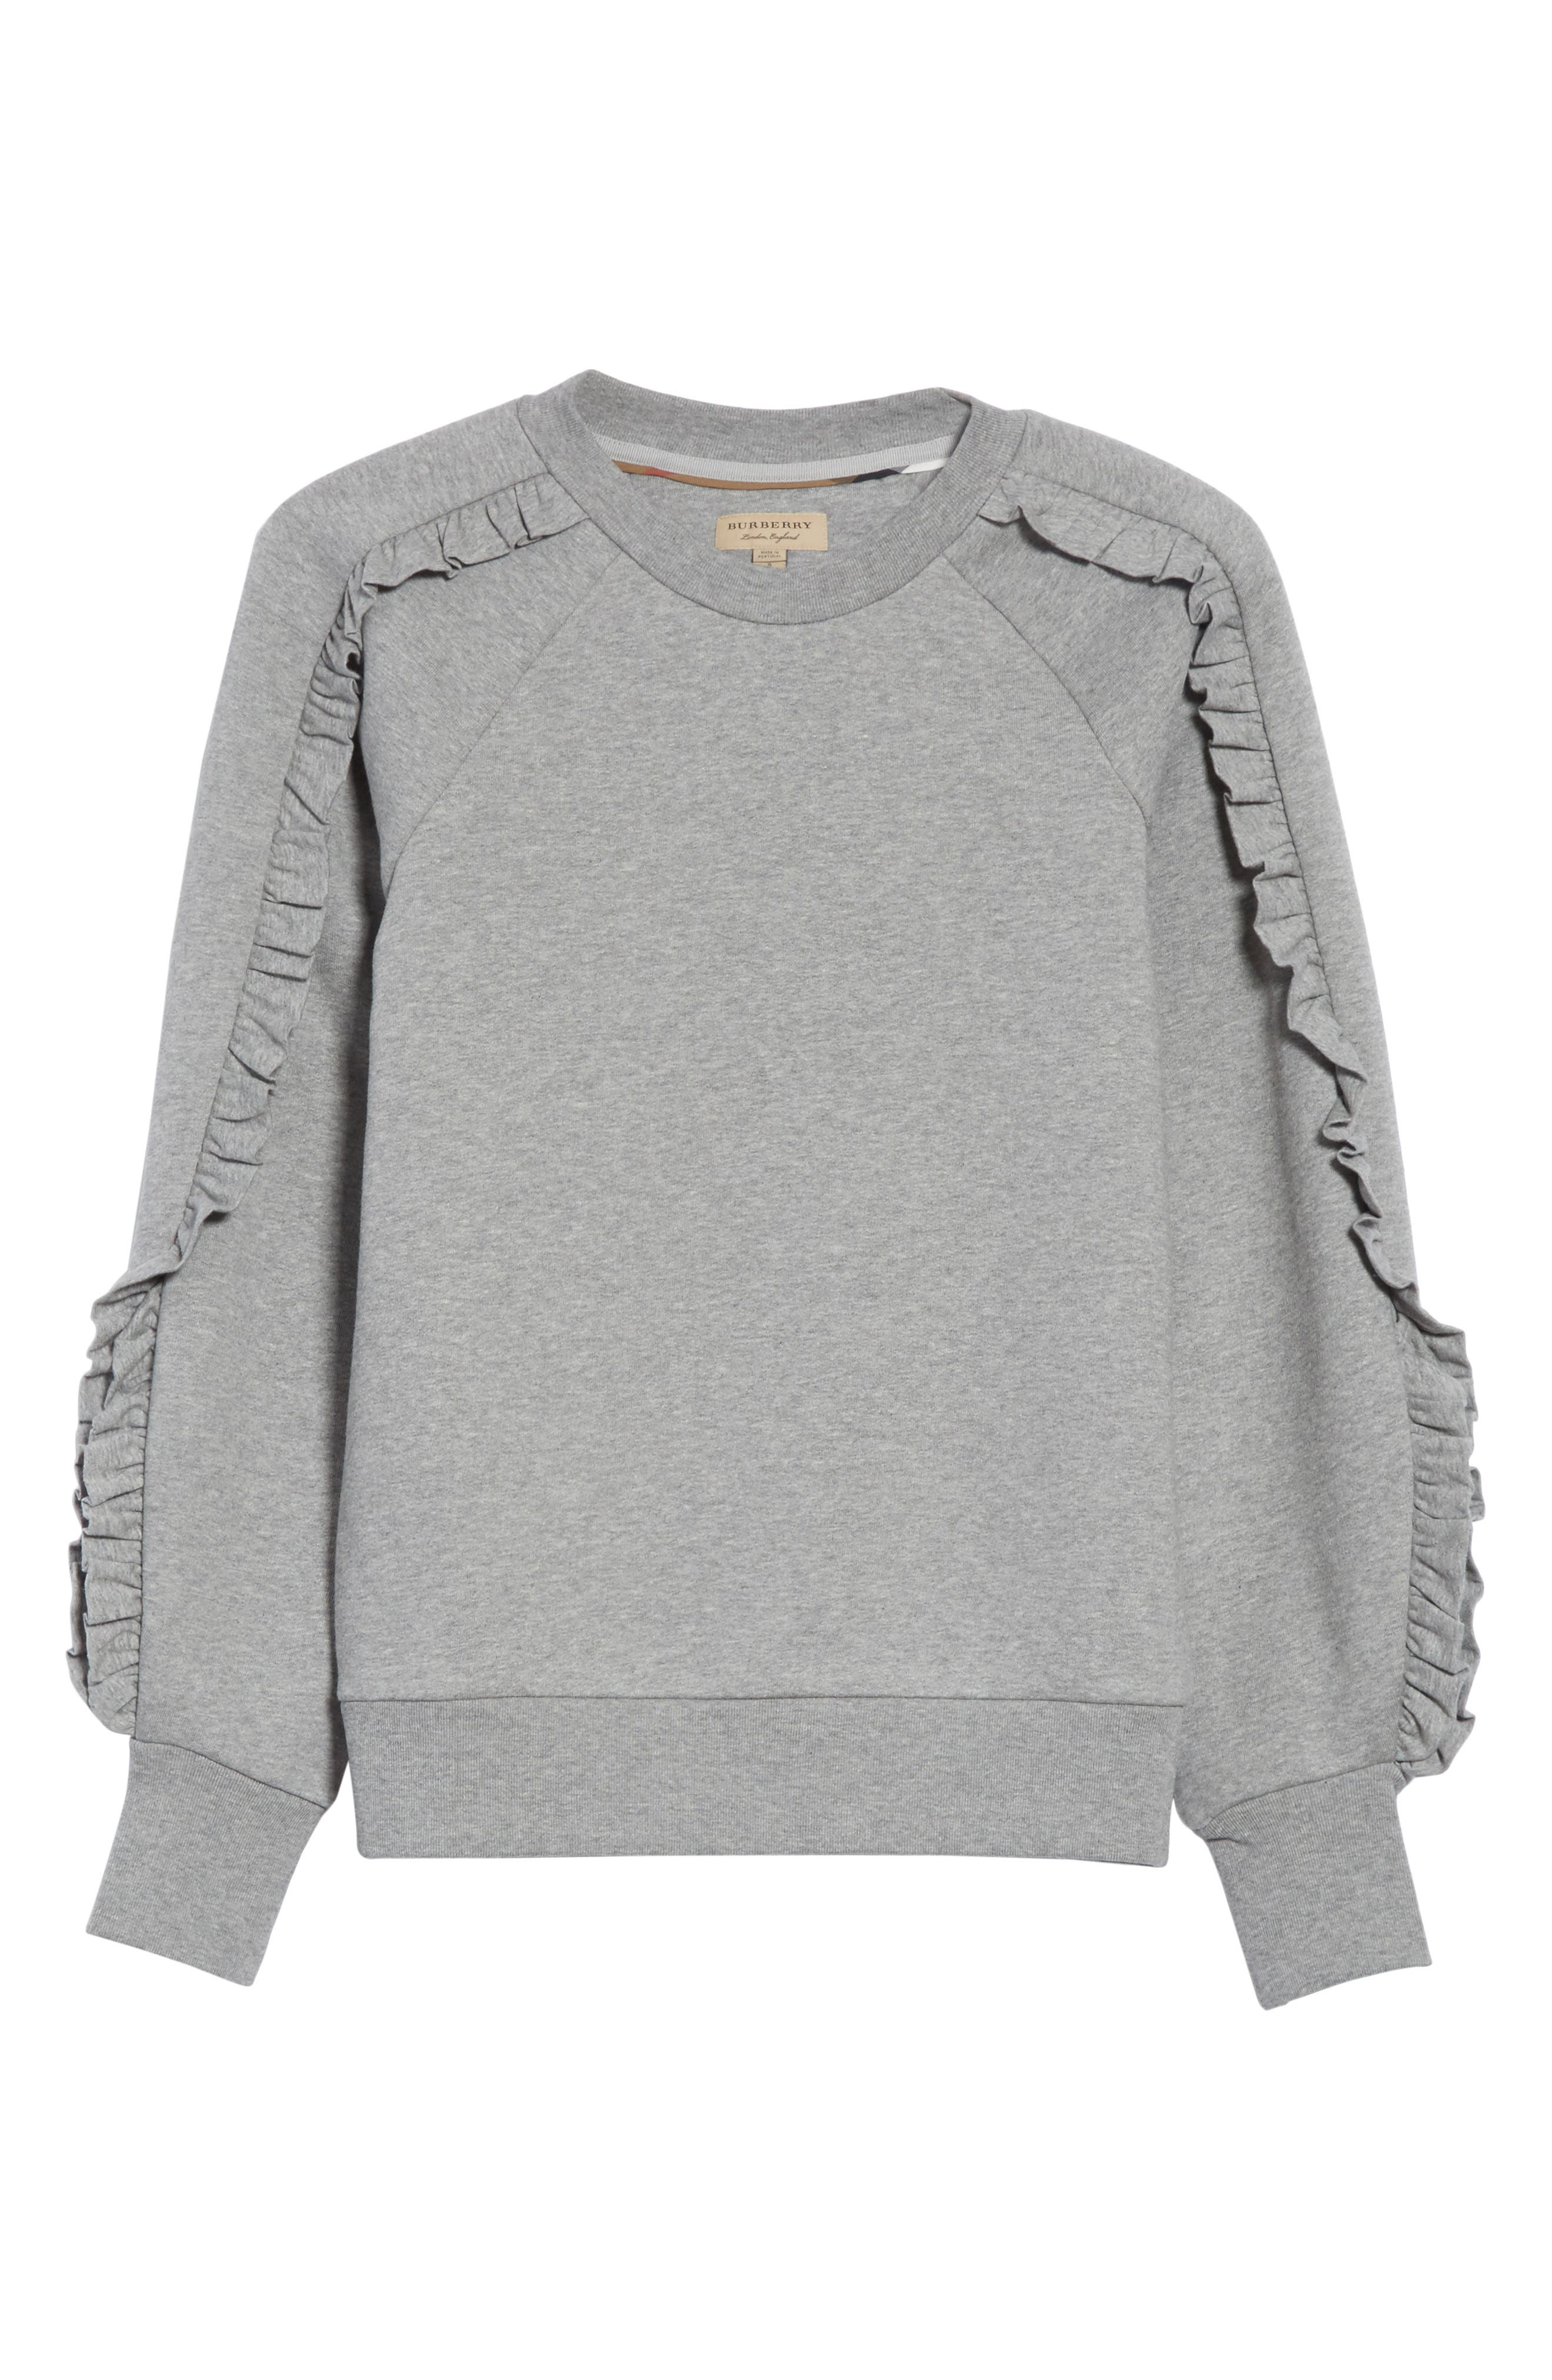 Kupa Ruffle Sleeve Sweatshirt,                             Alternate thumbnail 11, color,